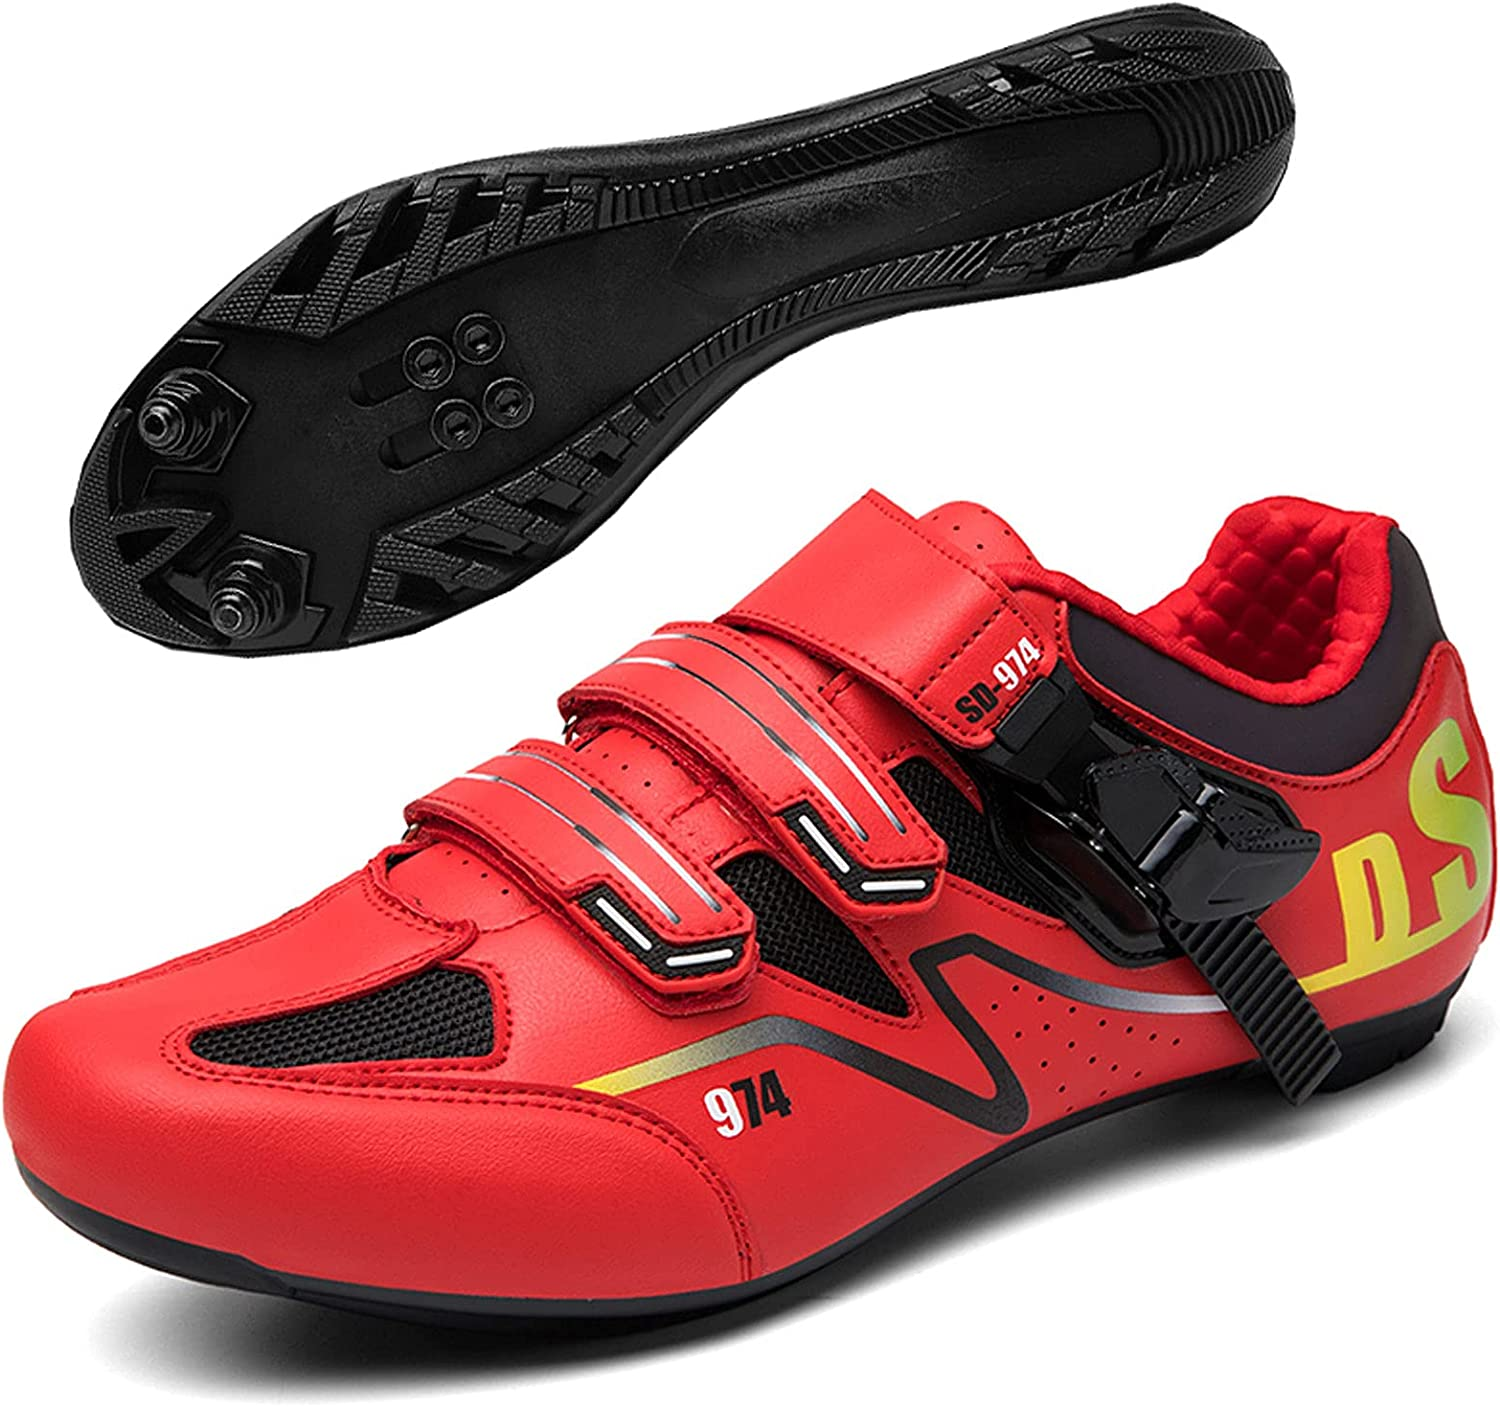 New mail order DSMGLSBB Men's Cycling Shoes Breathable Bicy Max 68% OFF Ultralight Outdoor